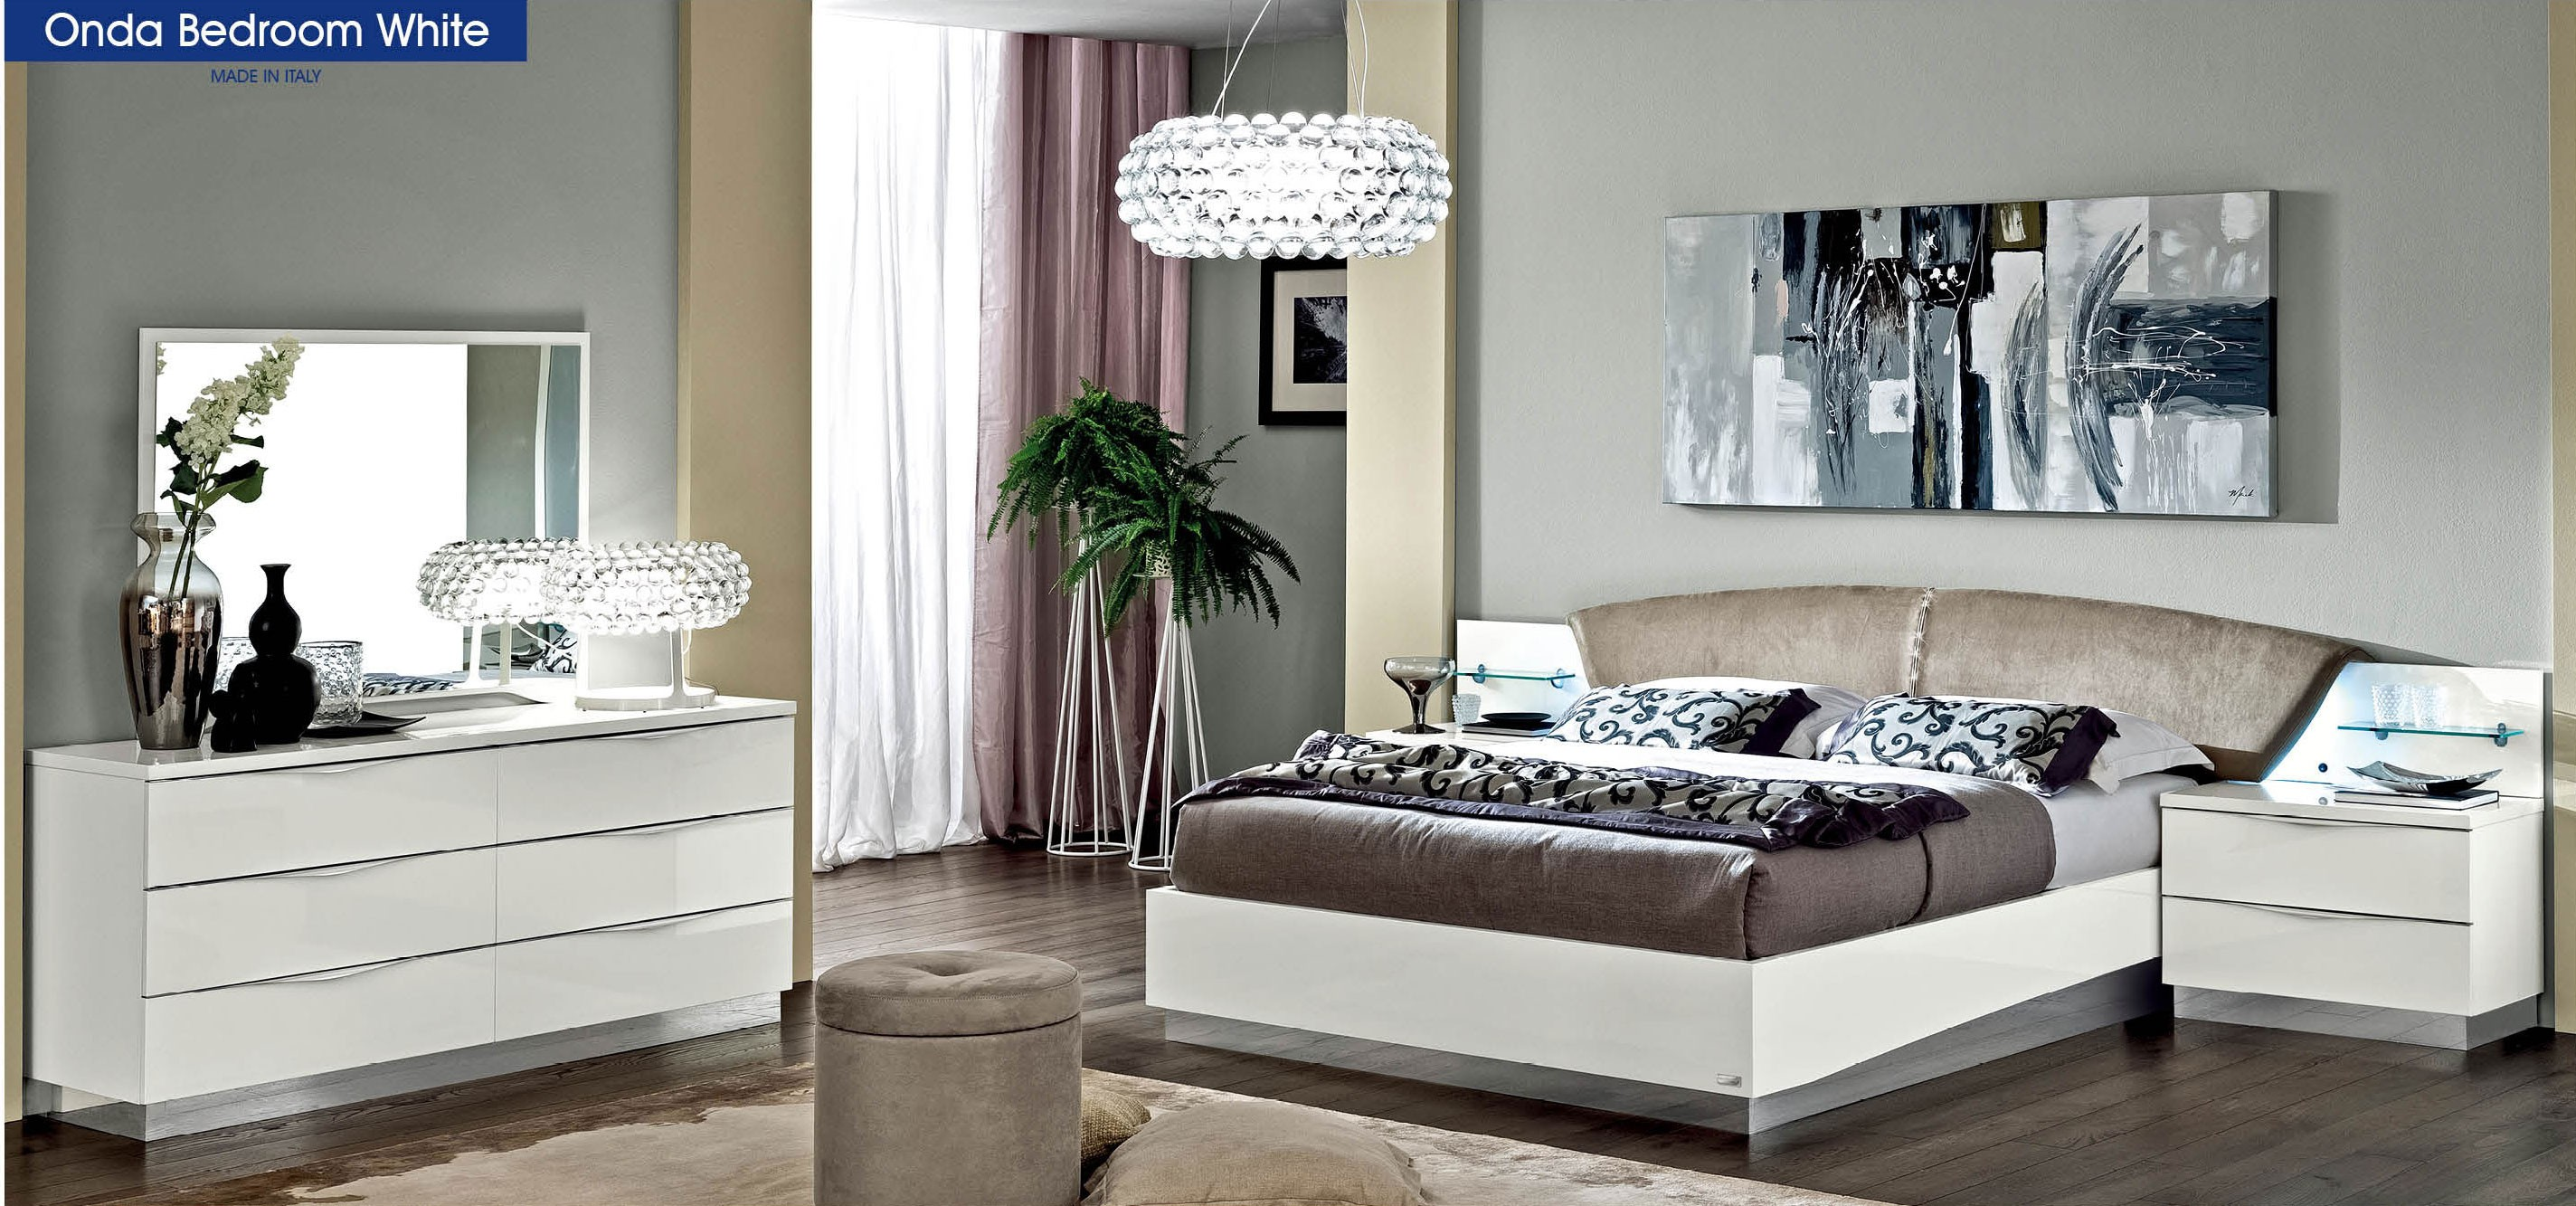 ESF Onda Italian Bedroom Set in White Lacquer by Camelgroup